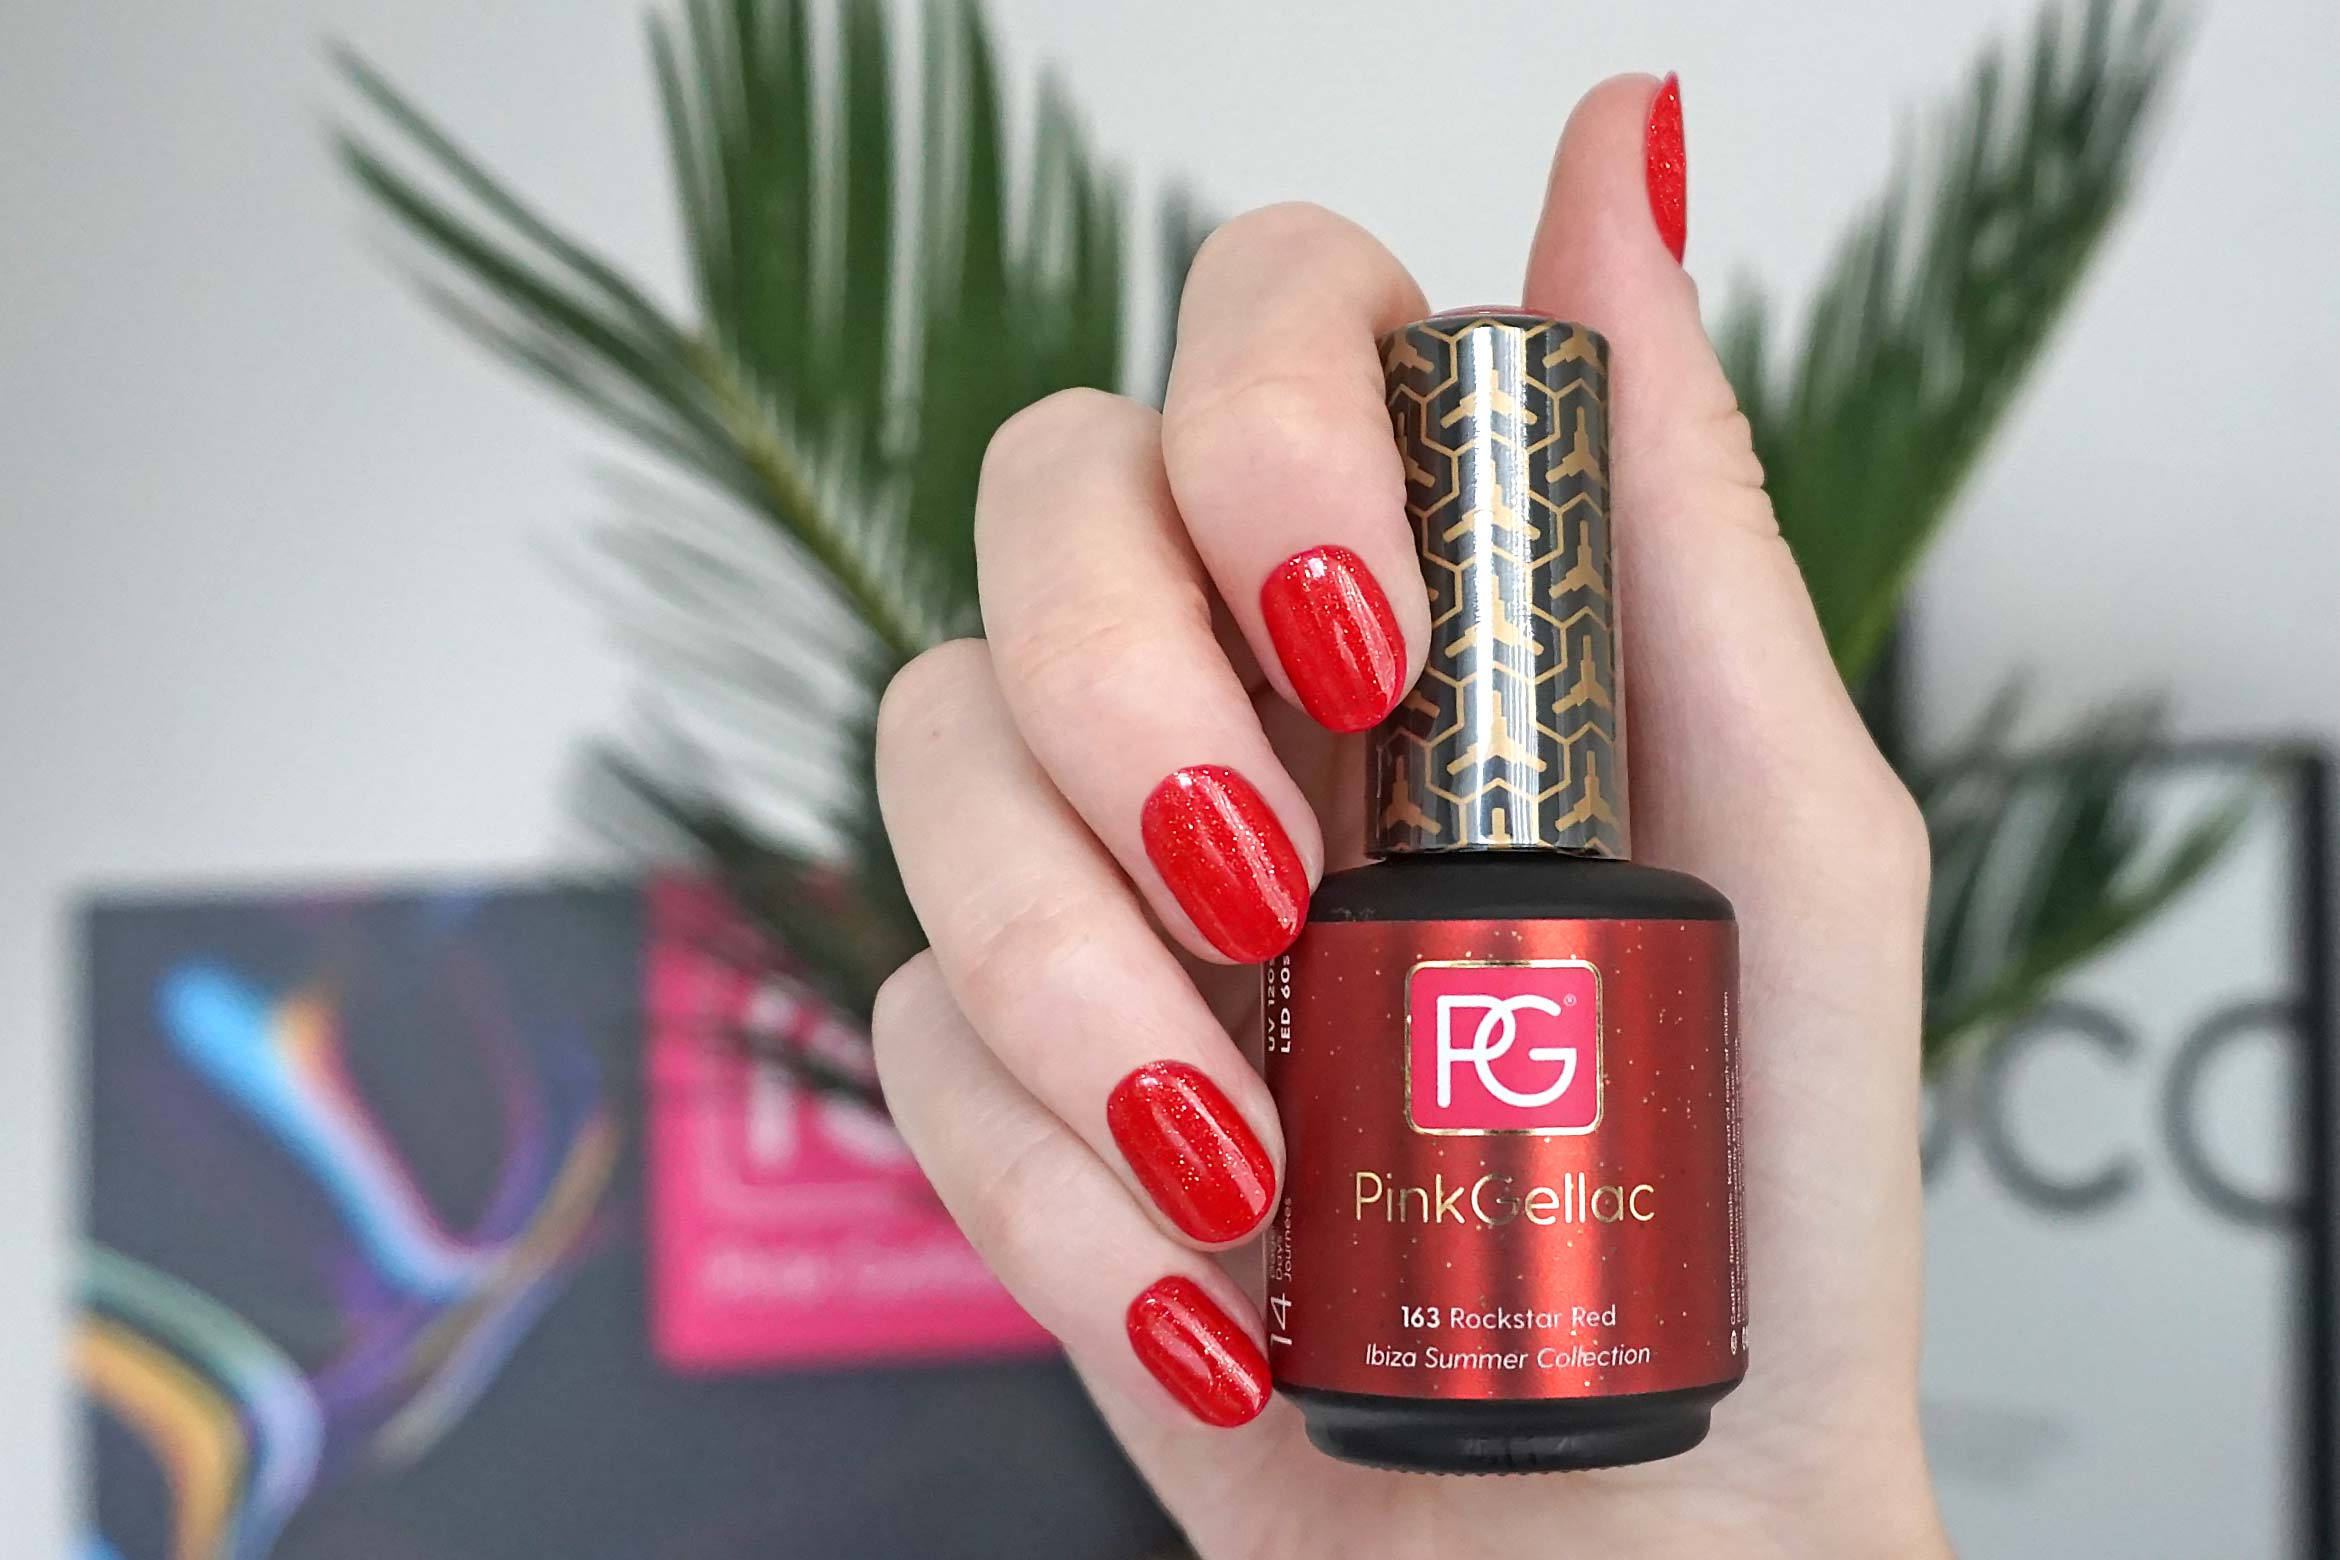 pink gellac 163 rockstar red swatch-1